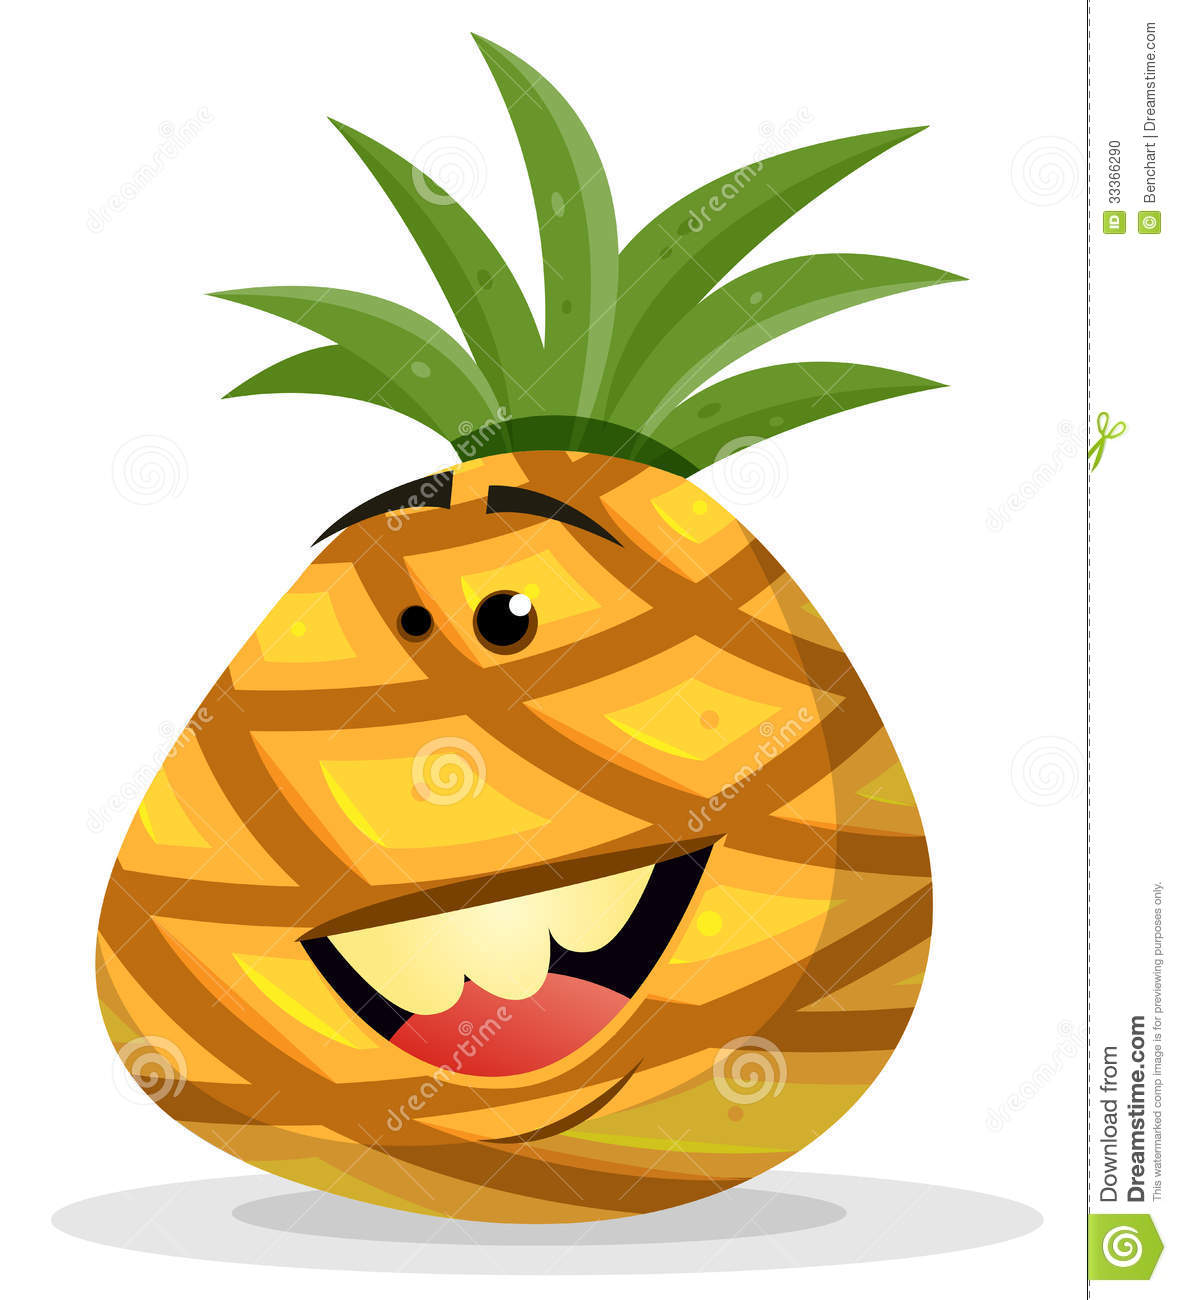 File Hey Pear  Animated as well Stock Illustration Cartoon Cheerful Bear Head Wearing Baseball Cap Vector Image53063424 additionally Stock Illustration Summertime Watermelon Sunglasses Happy Cartoon Character Smiling Thumbs Up Isolated White Background Eps File Image56551788 furthermore 25836 besides Hawaiian Pineapple Doing The Shaka Hand Sign Vector Clip Art Illustration With Simple Gradients All In A Single Layer Vector 12614707. on pineapple cartoon character